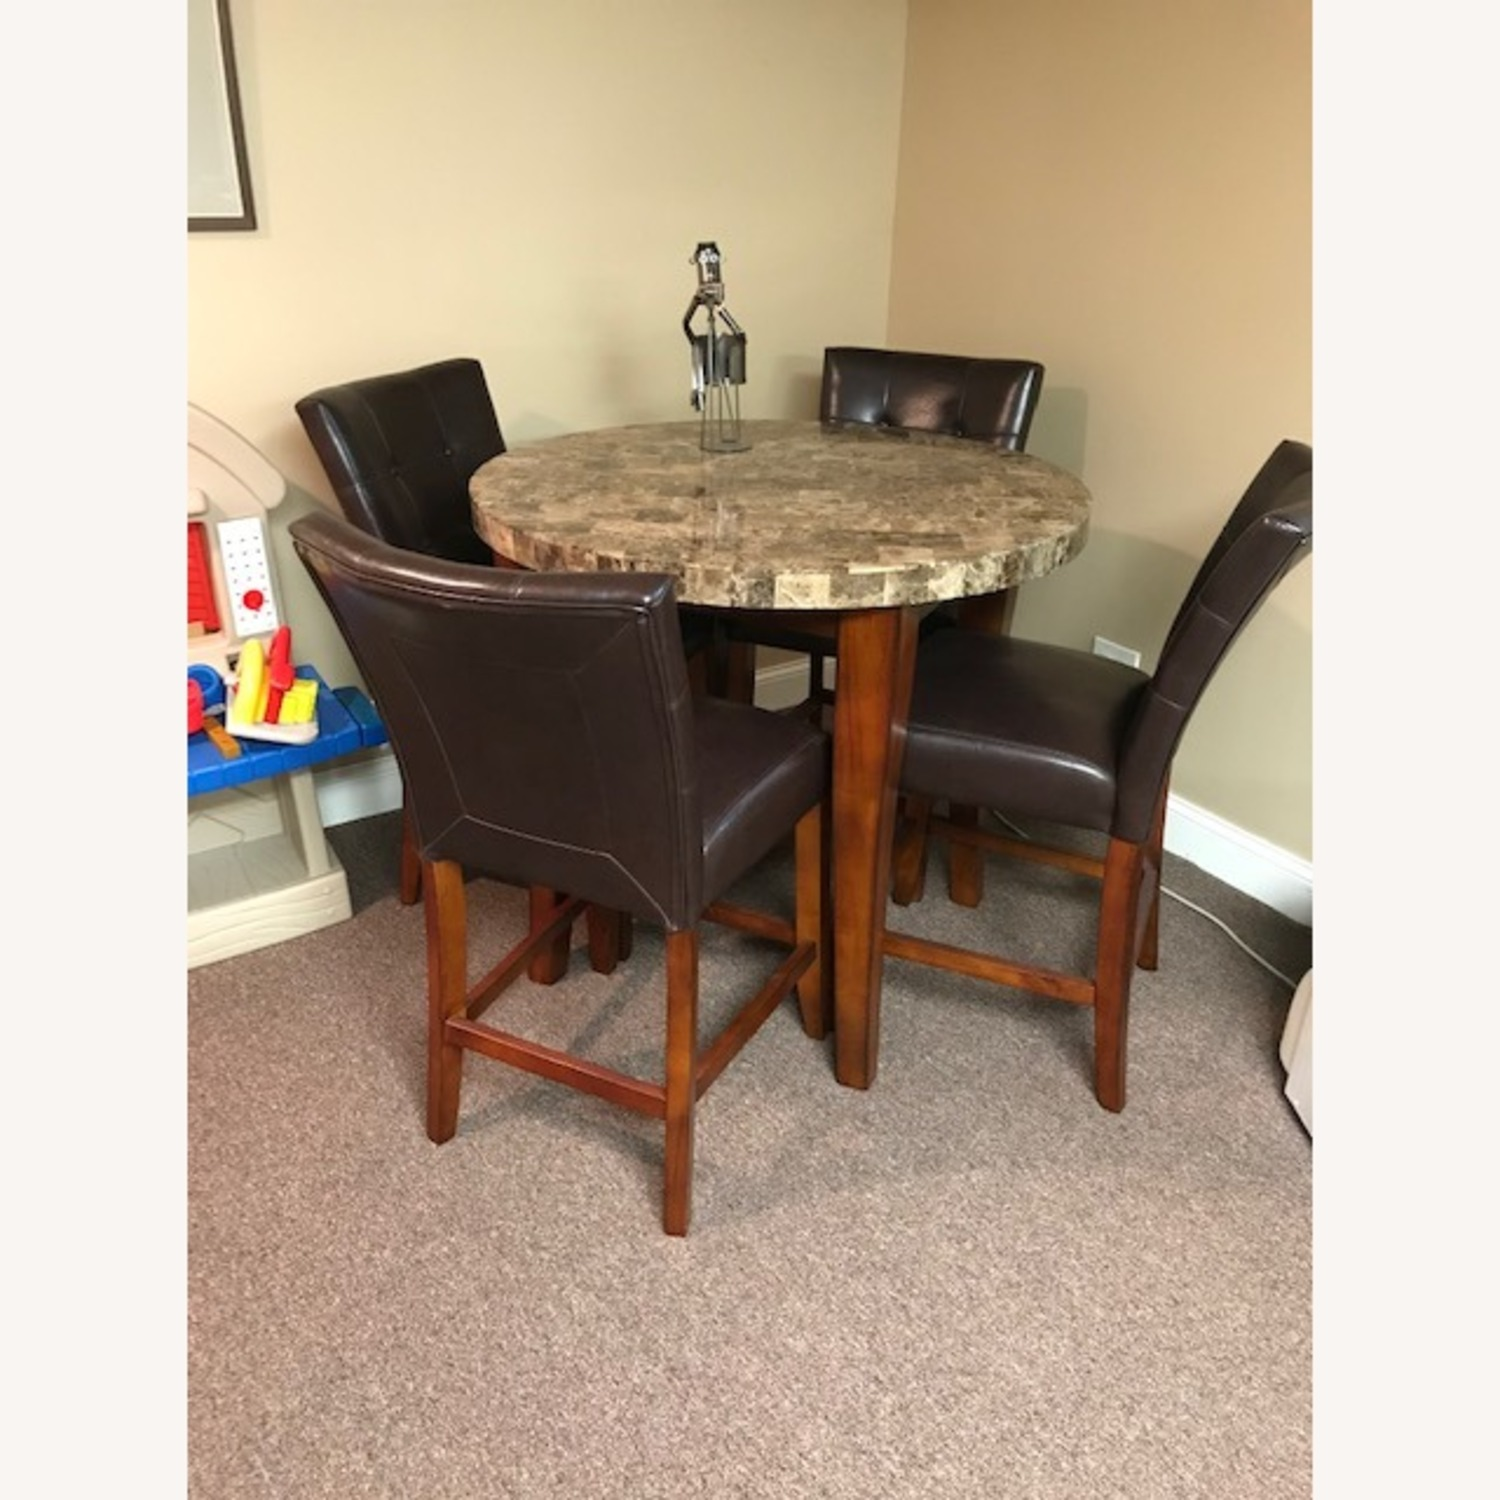 Bob's Discount Furniture Bar Table and 4 Stools - image-2